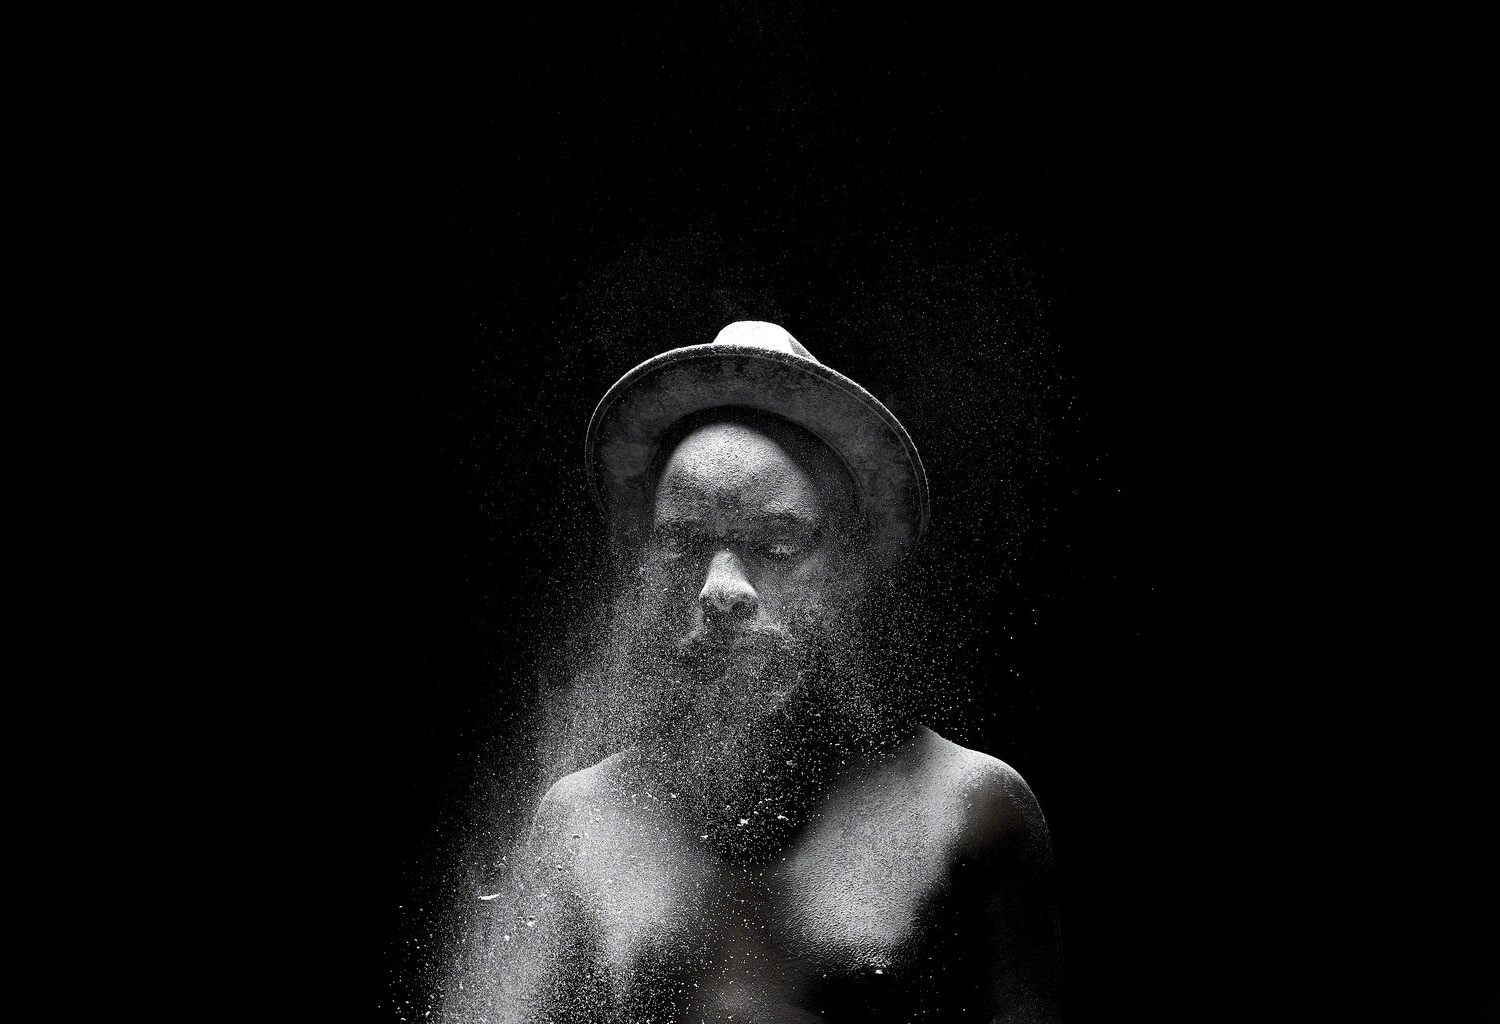 Man standing with splashes of water in his face